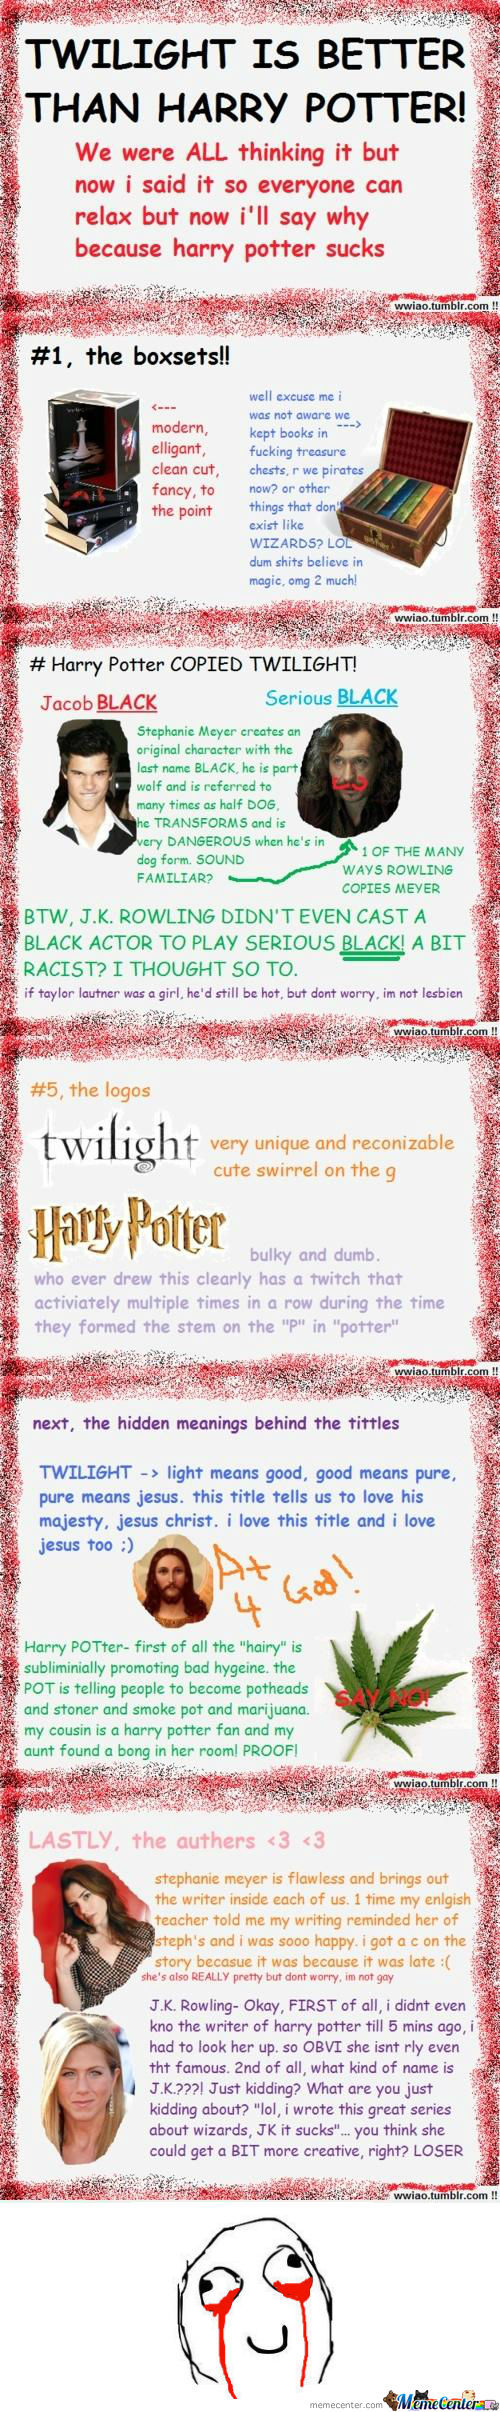 [RMX] Twilight is better than Harry Potter